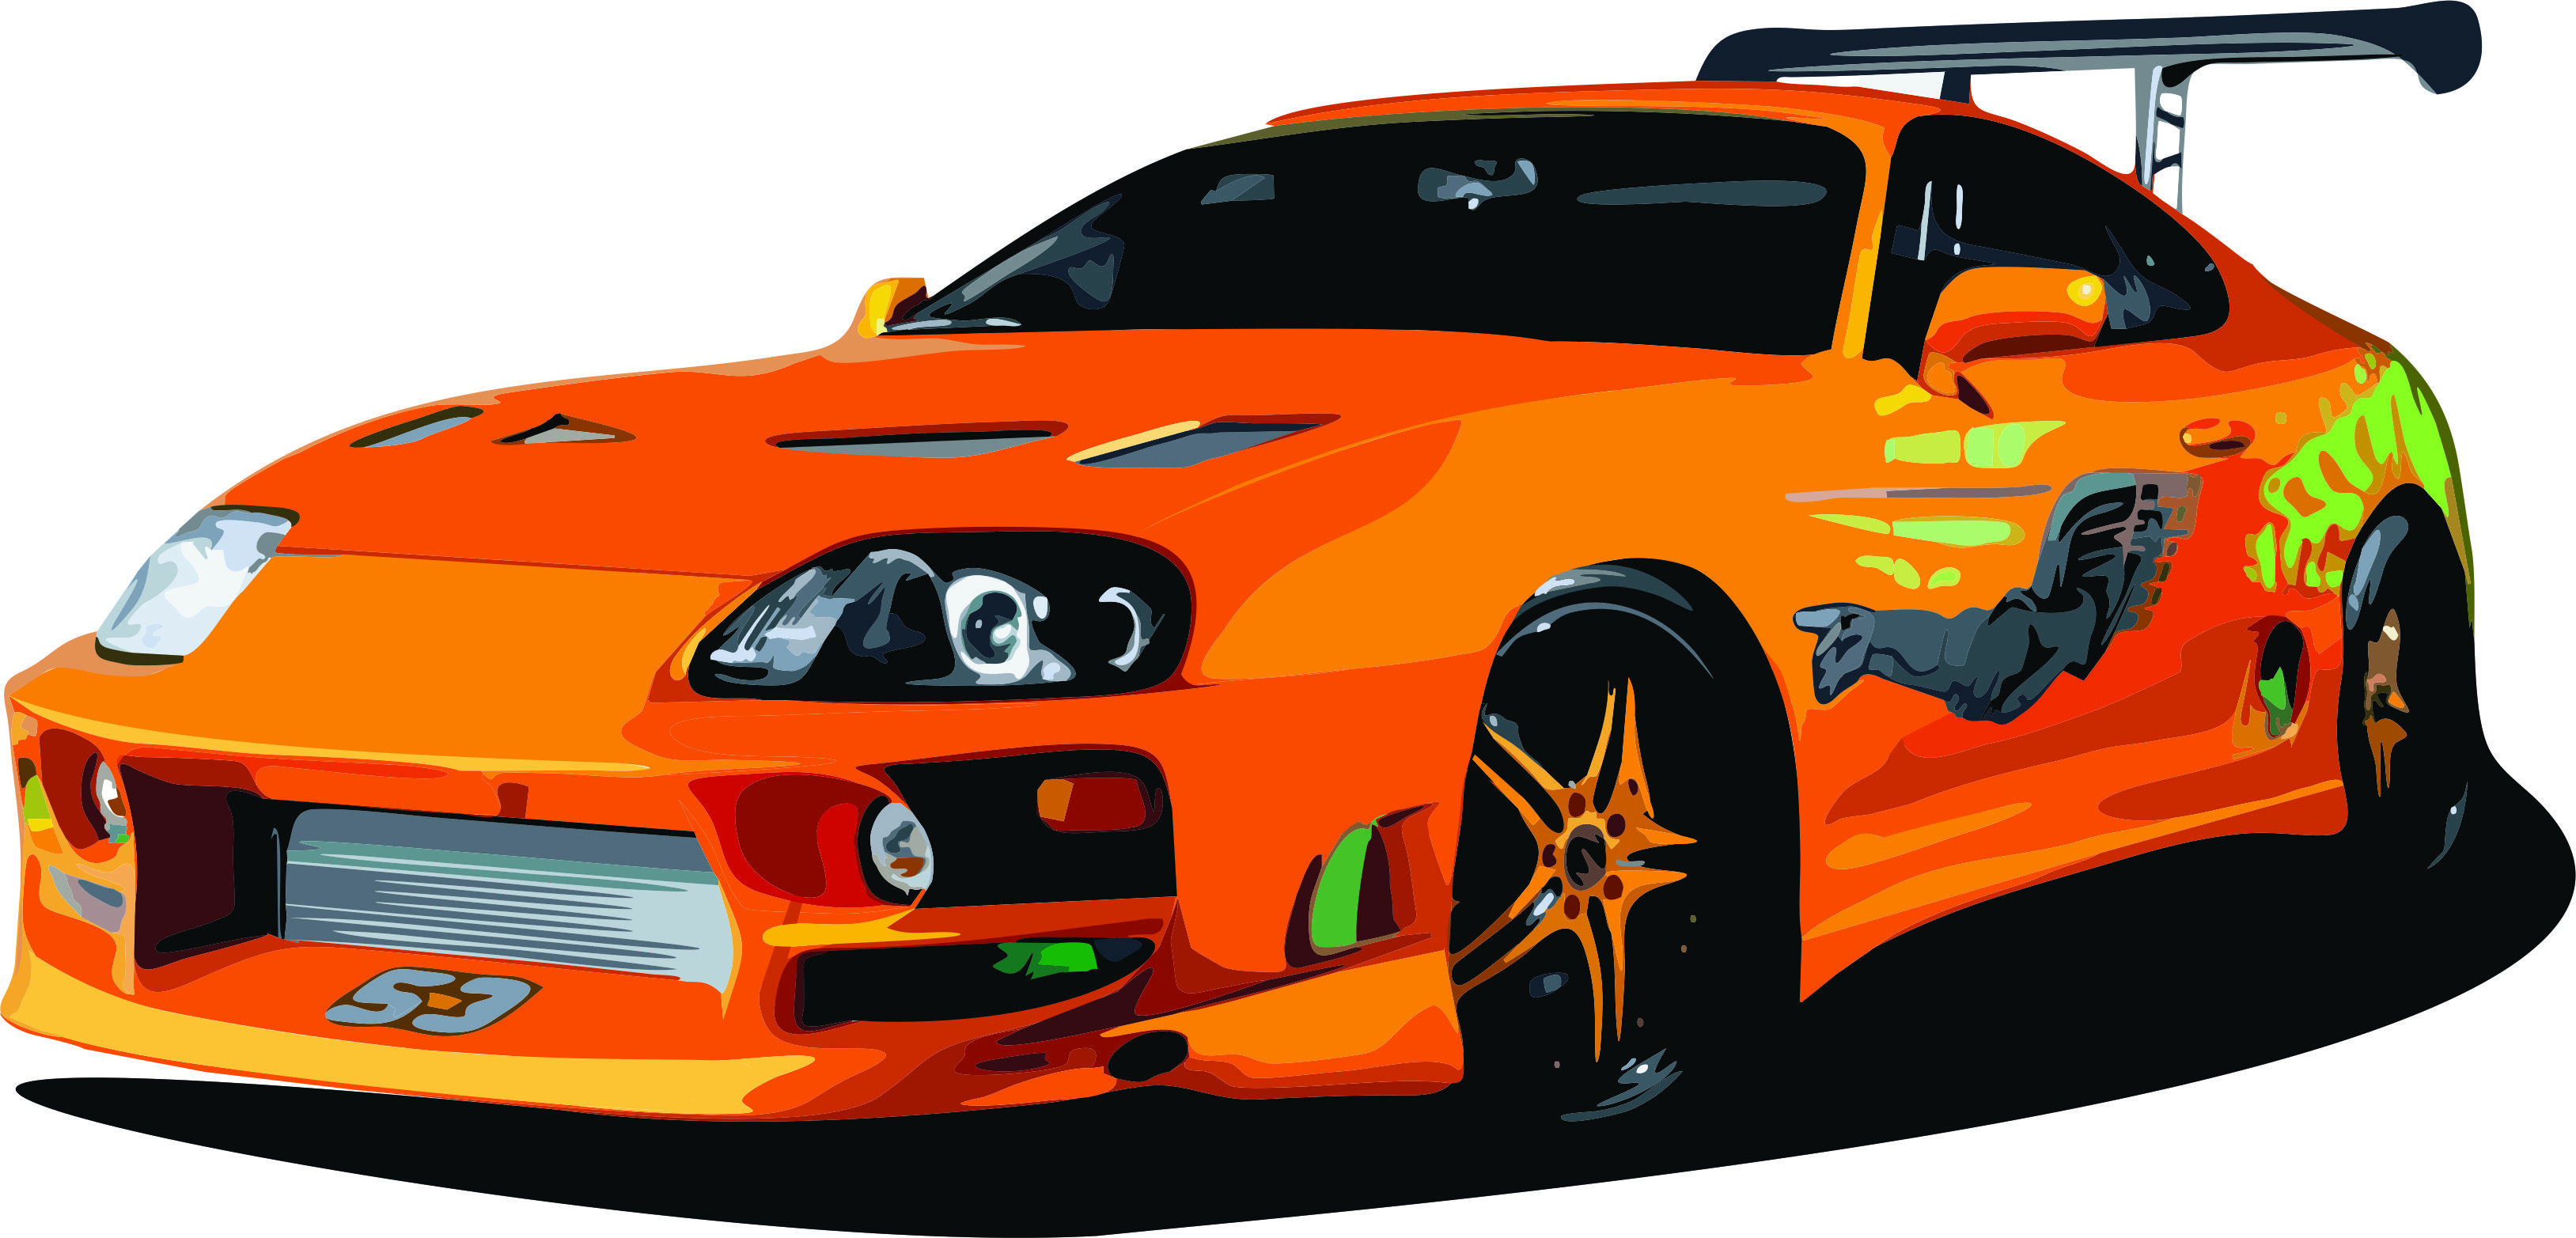 Toyota Supra From The Fast And The Furious Toyota Supra Drawing At Getdrawings Free For Personal Use